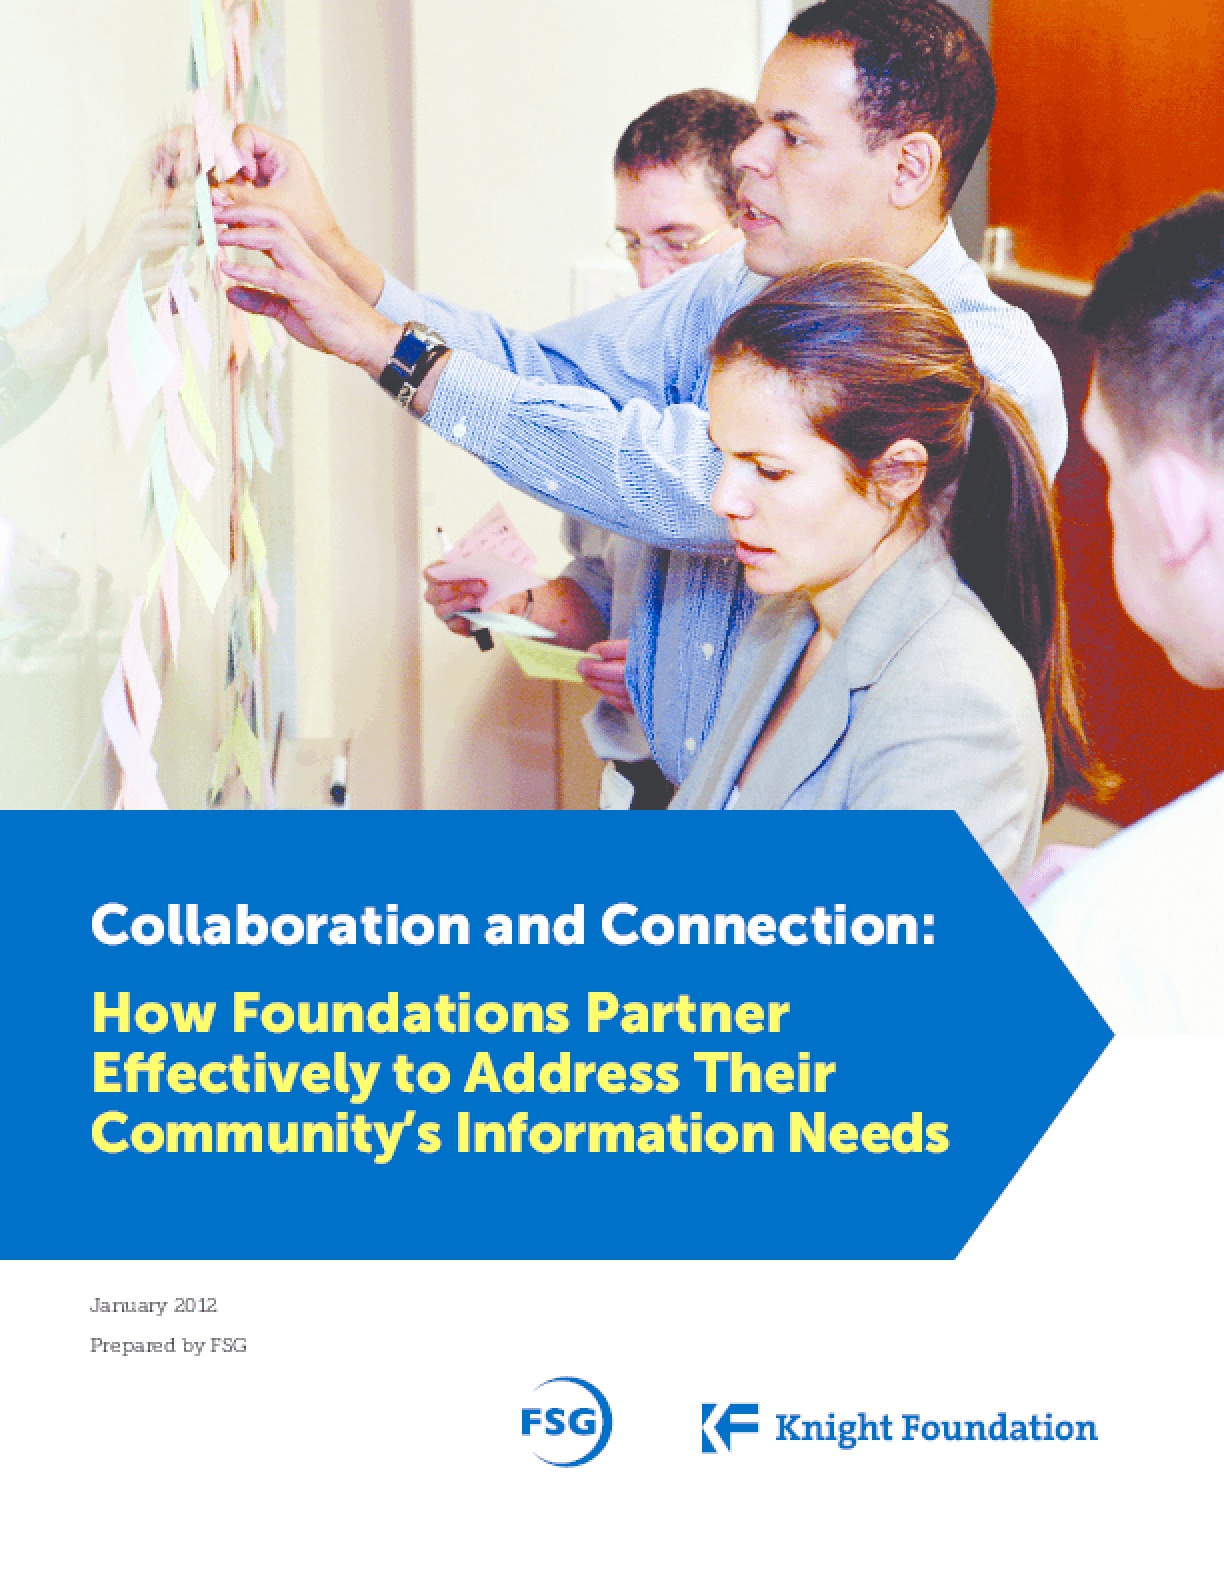 Collaboration and Connection: How Foundations Partner Effectively to Address Their Community's Information Needs